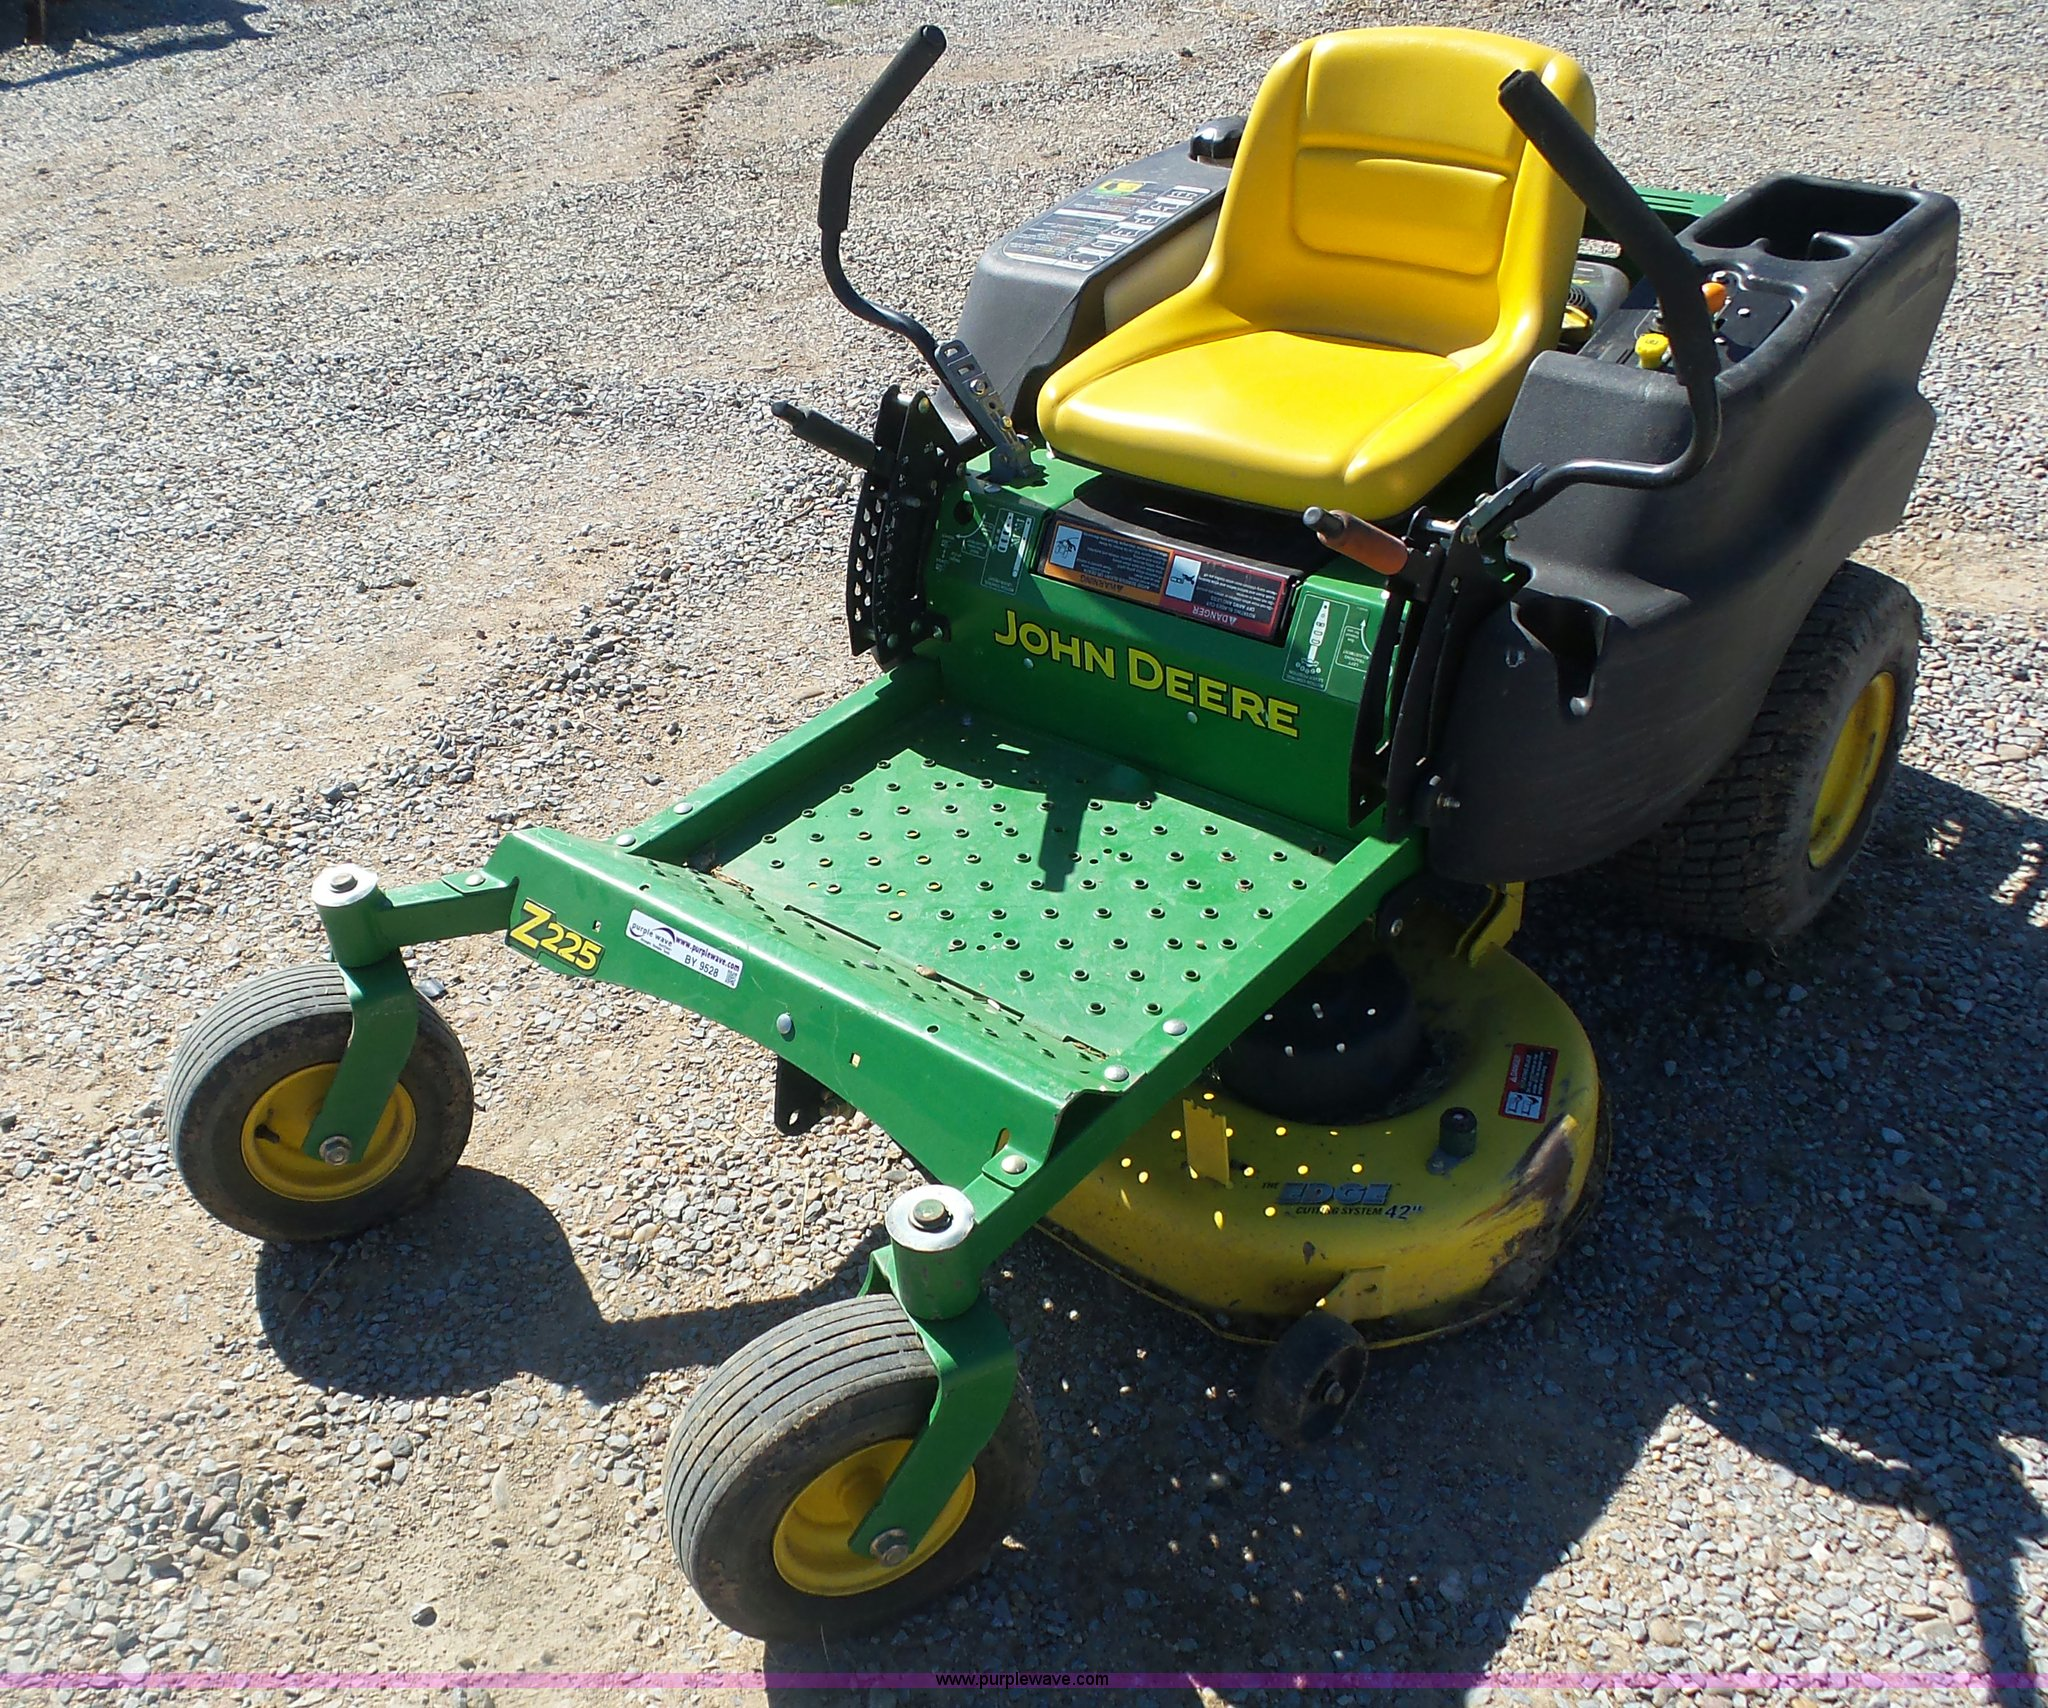 John Deere Z225 EZ-Trak ZTR lawn mower | Item BY9528 | SOLD!